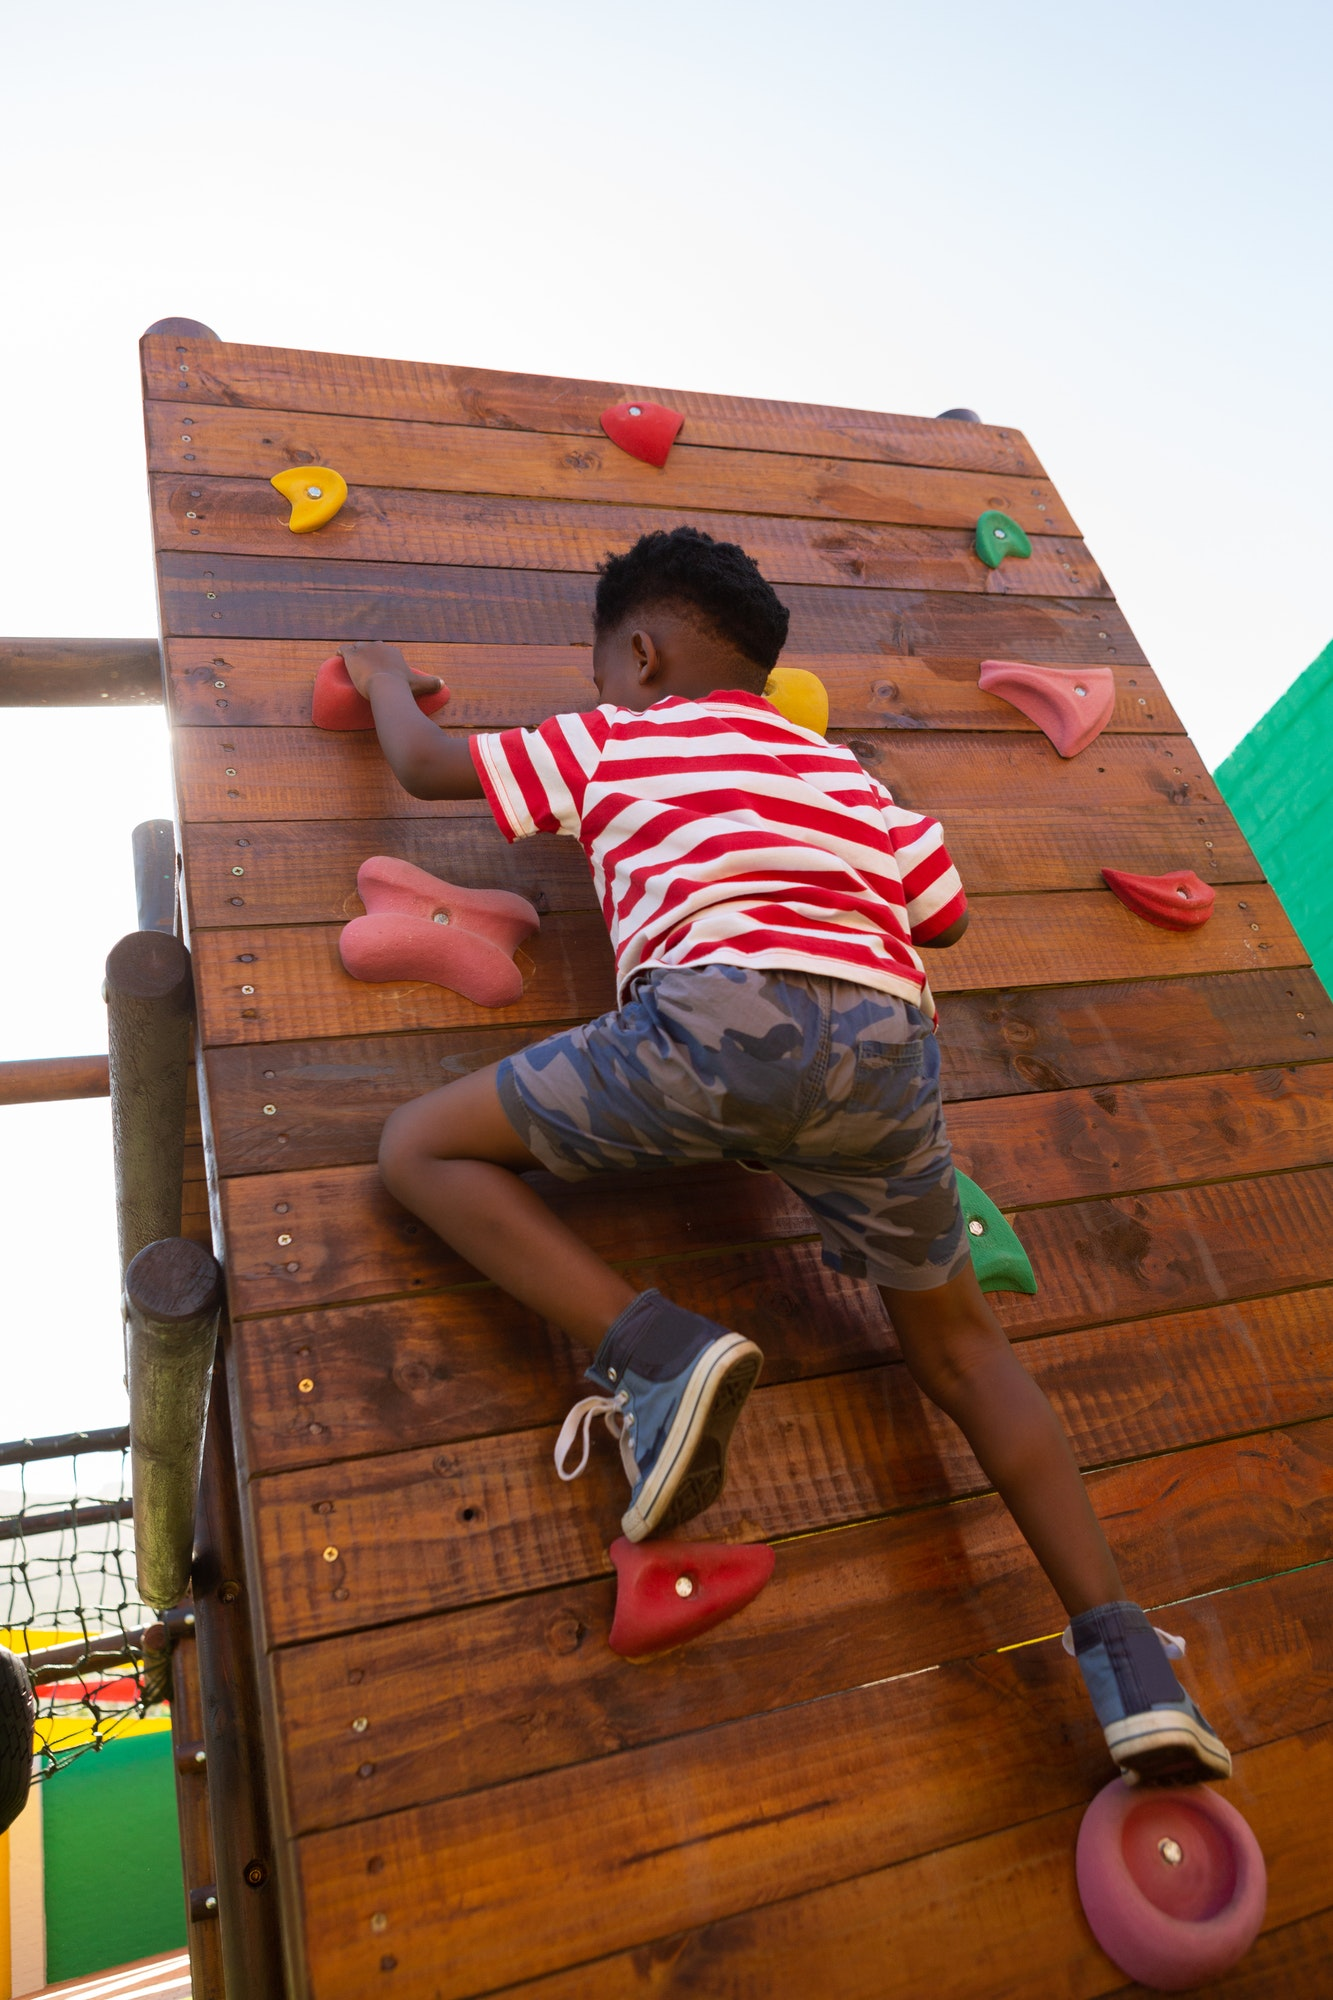 Cute schoolboy climbing a wall in the school playground on a sunny day